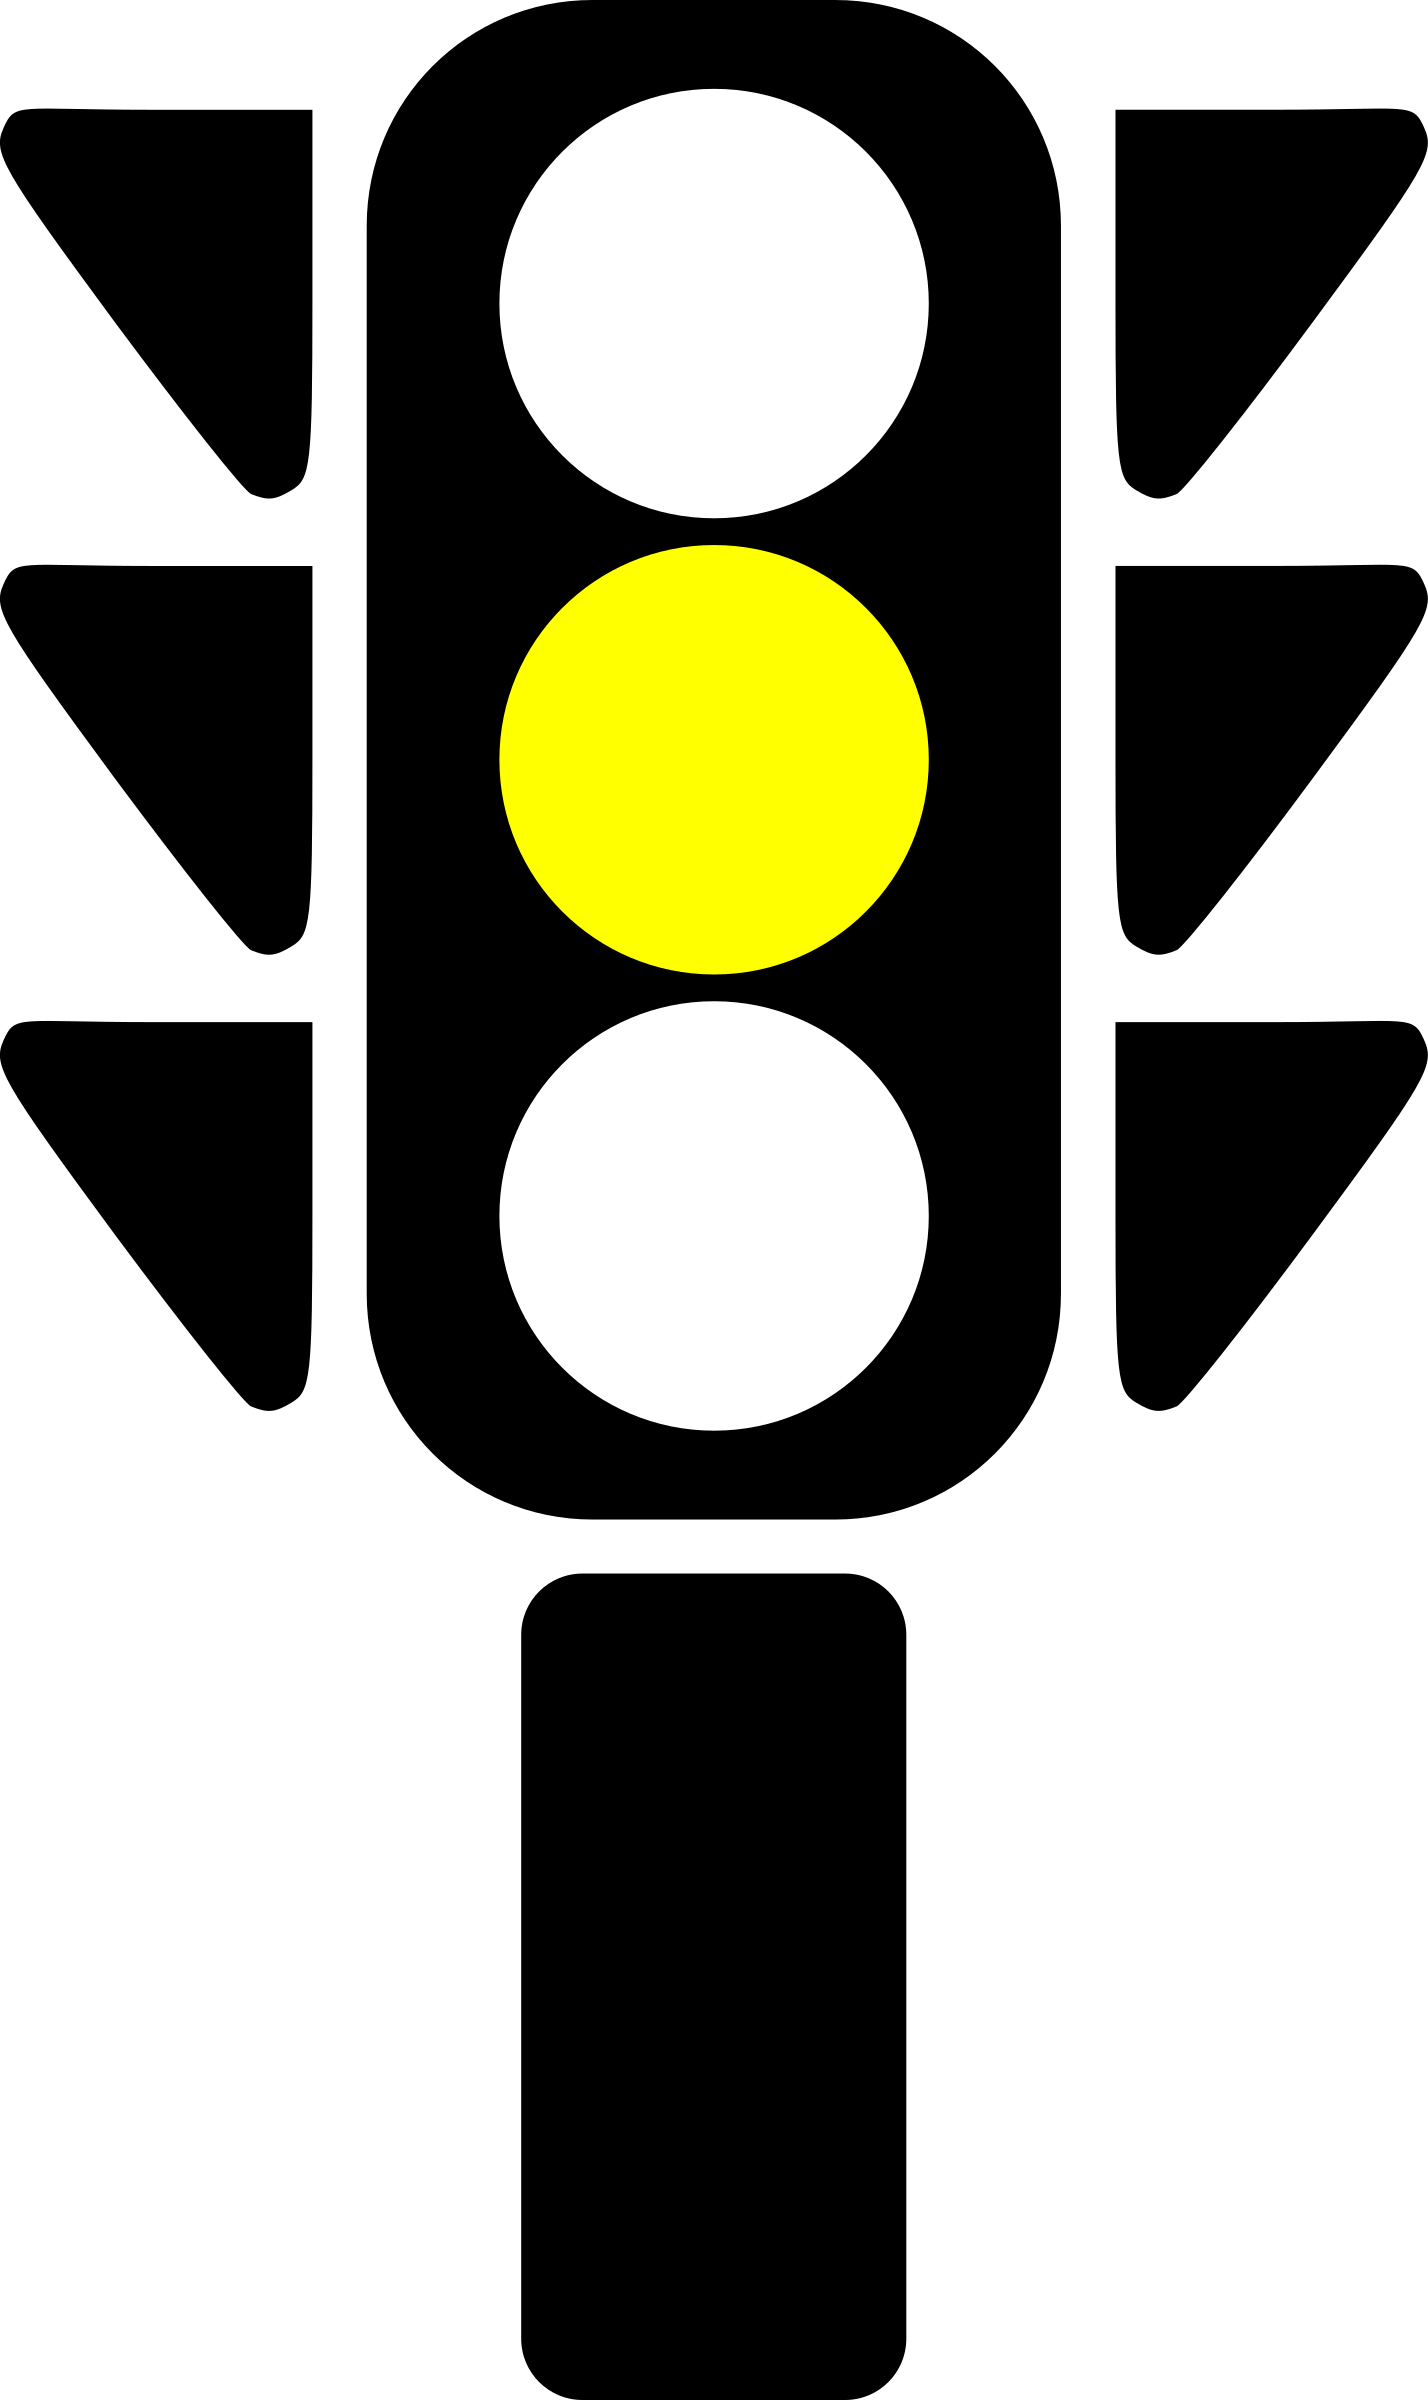 Traffic semaphore yellow light by laobc